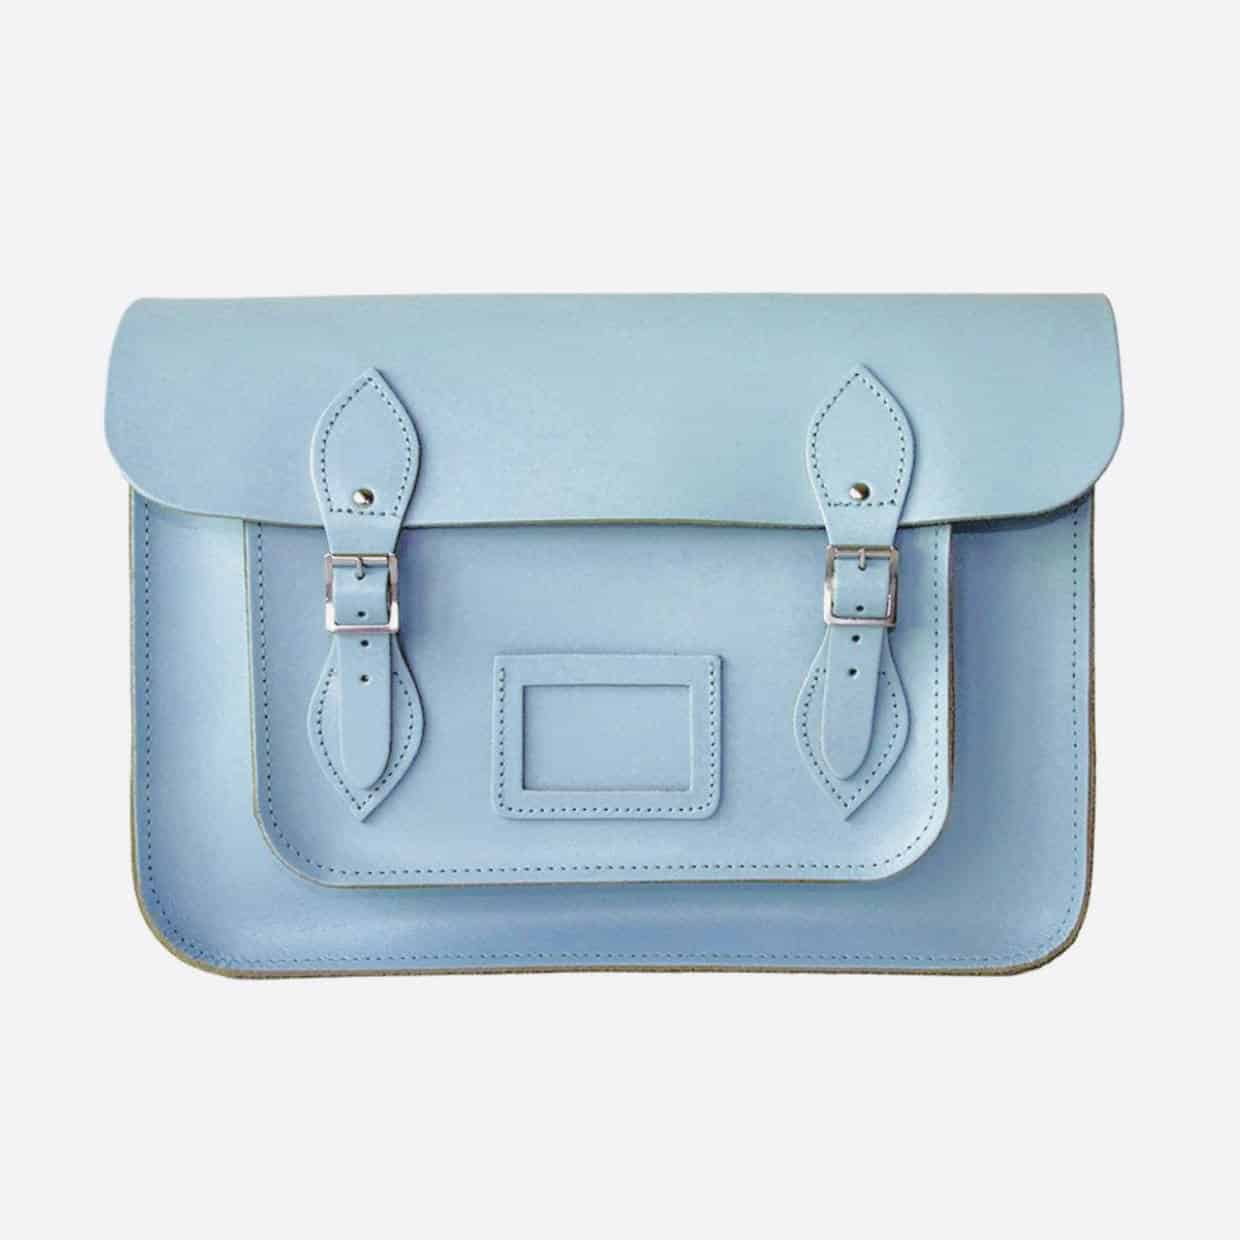 Blue satchel 1240x1240 - Britain Calling - History of design icon.